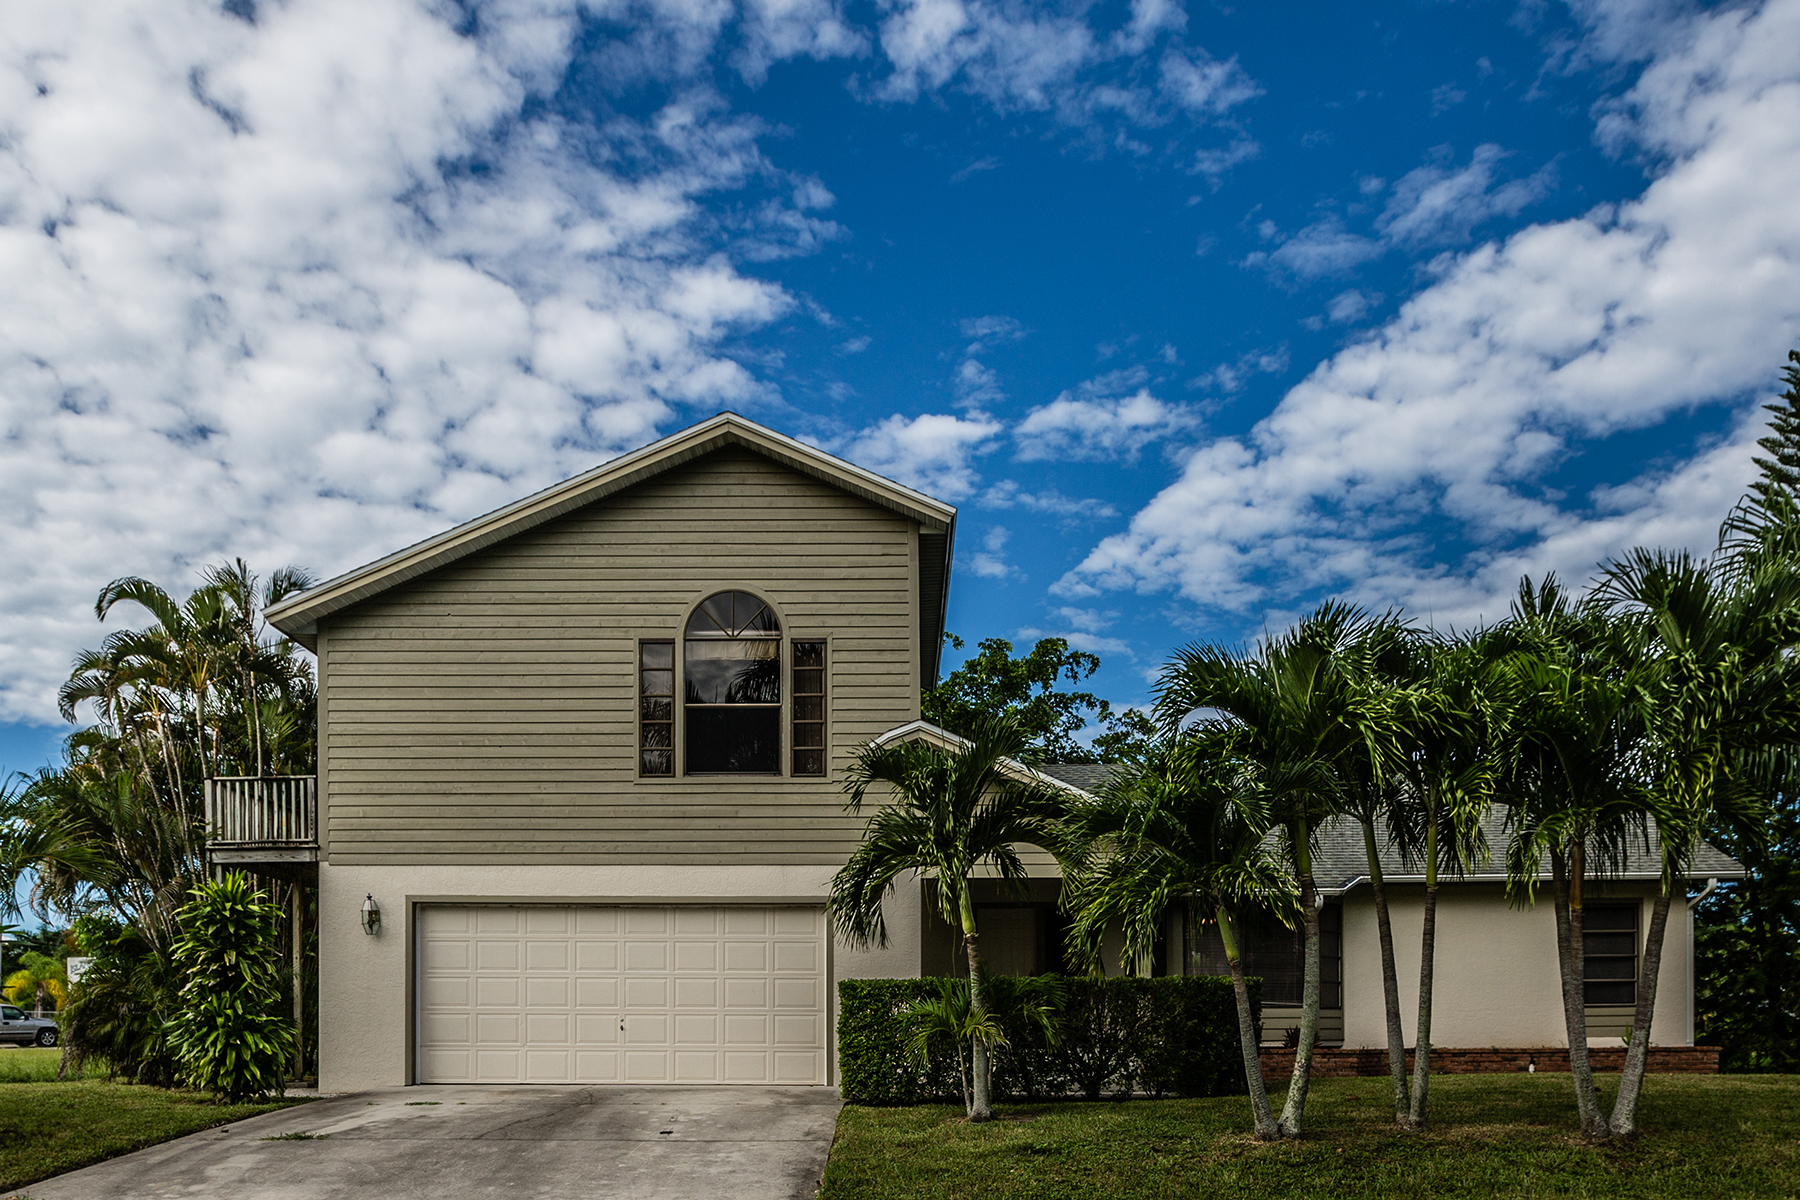 Single Family Home for Sale at MARCO ISLAND - COVEWOOD COURT 20 Covewood Ct Marco Island, Florida, 34145 United States